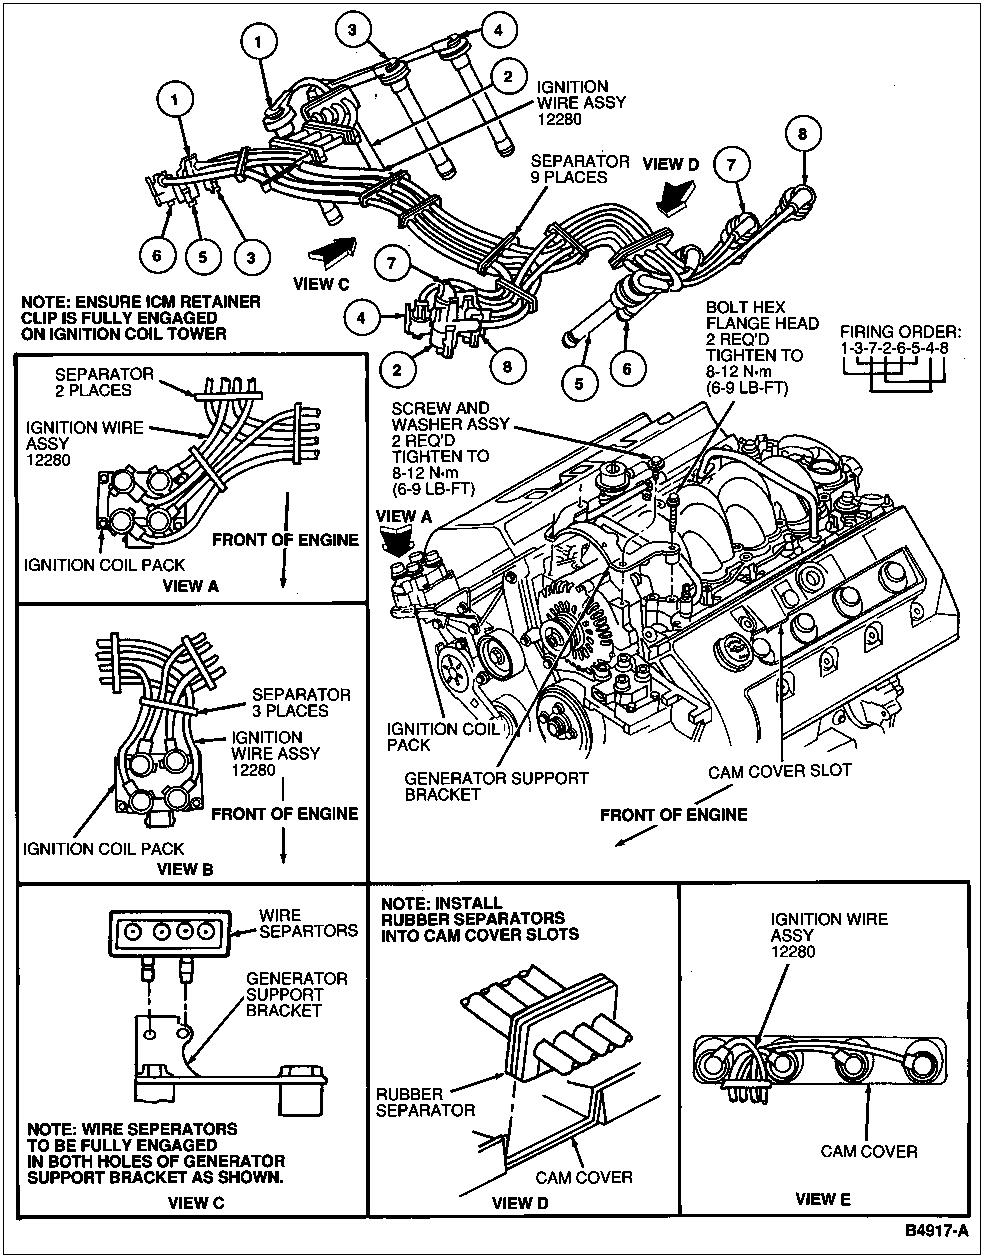 1993 lincoln town car engine diagram af 2178  1994 lincoln mark viii wiring diagram download diagram  1994 lincoln mark viii wiring diagram